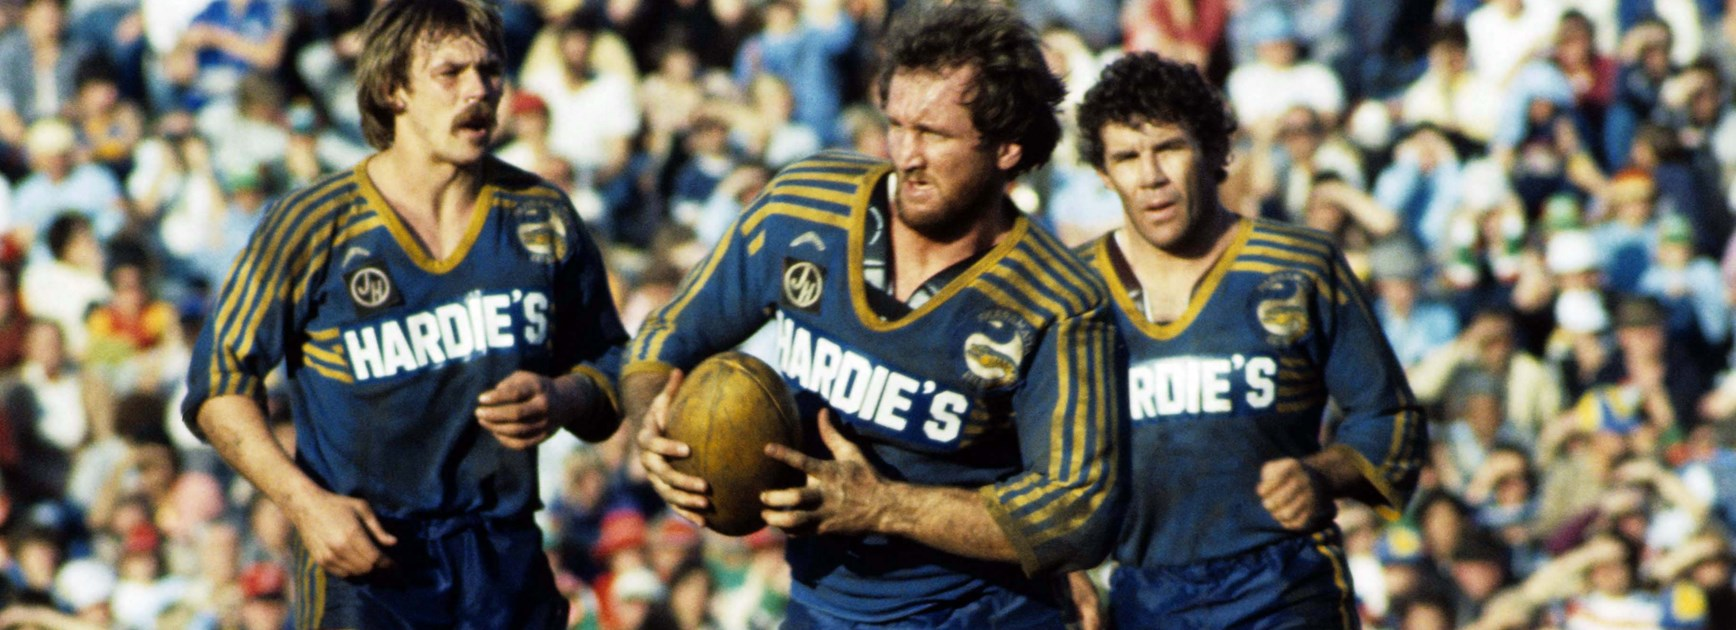 September 28: Dream farewell for Eels greats; 'Bedsy' bows out